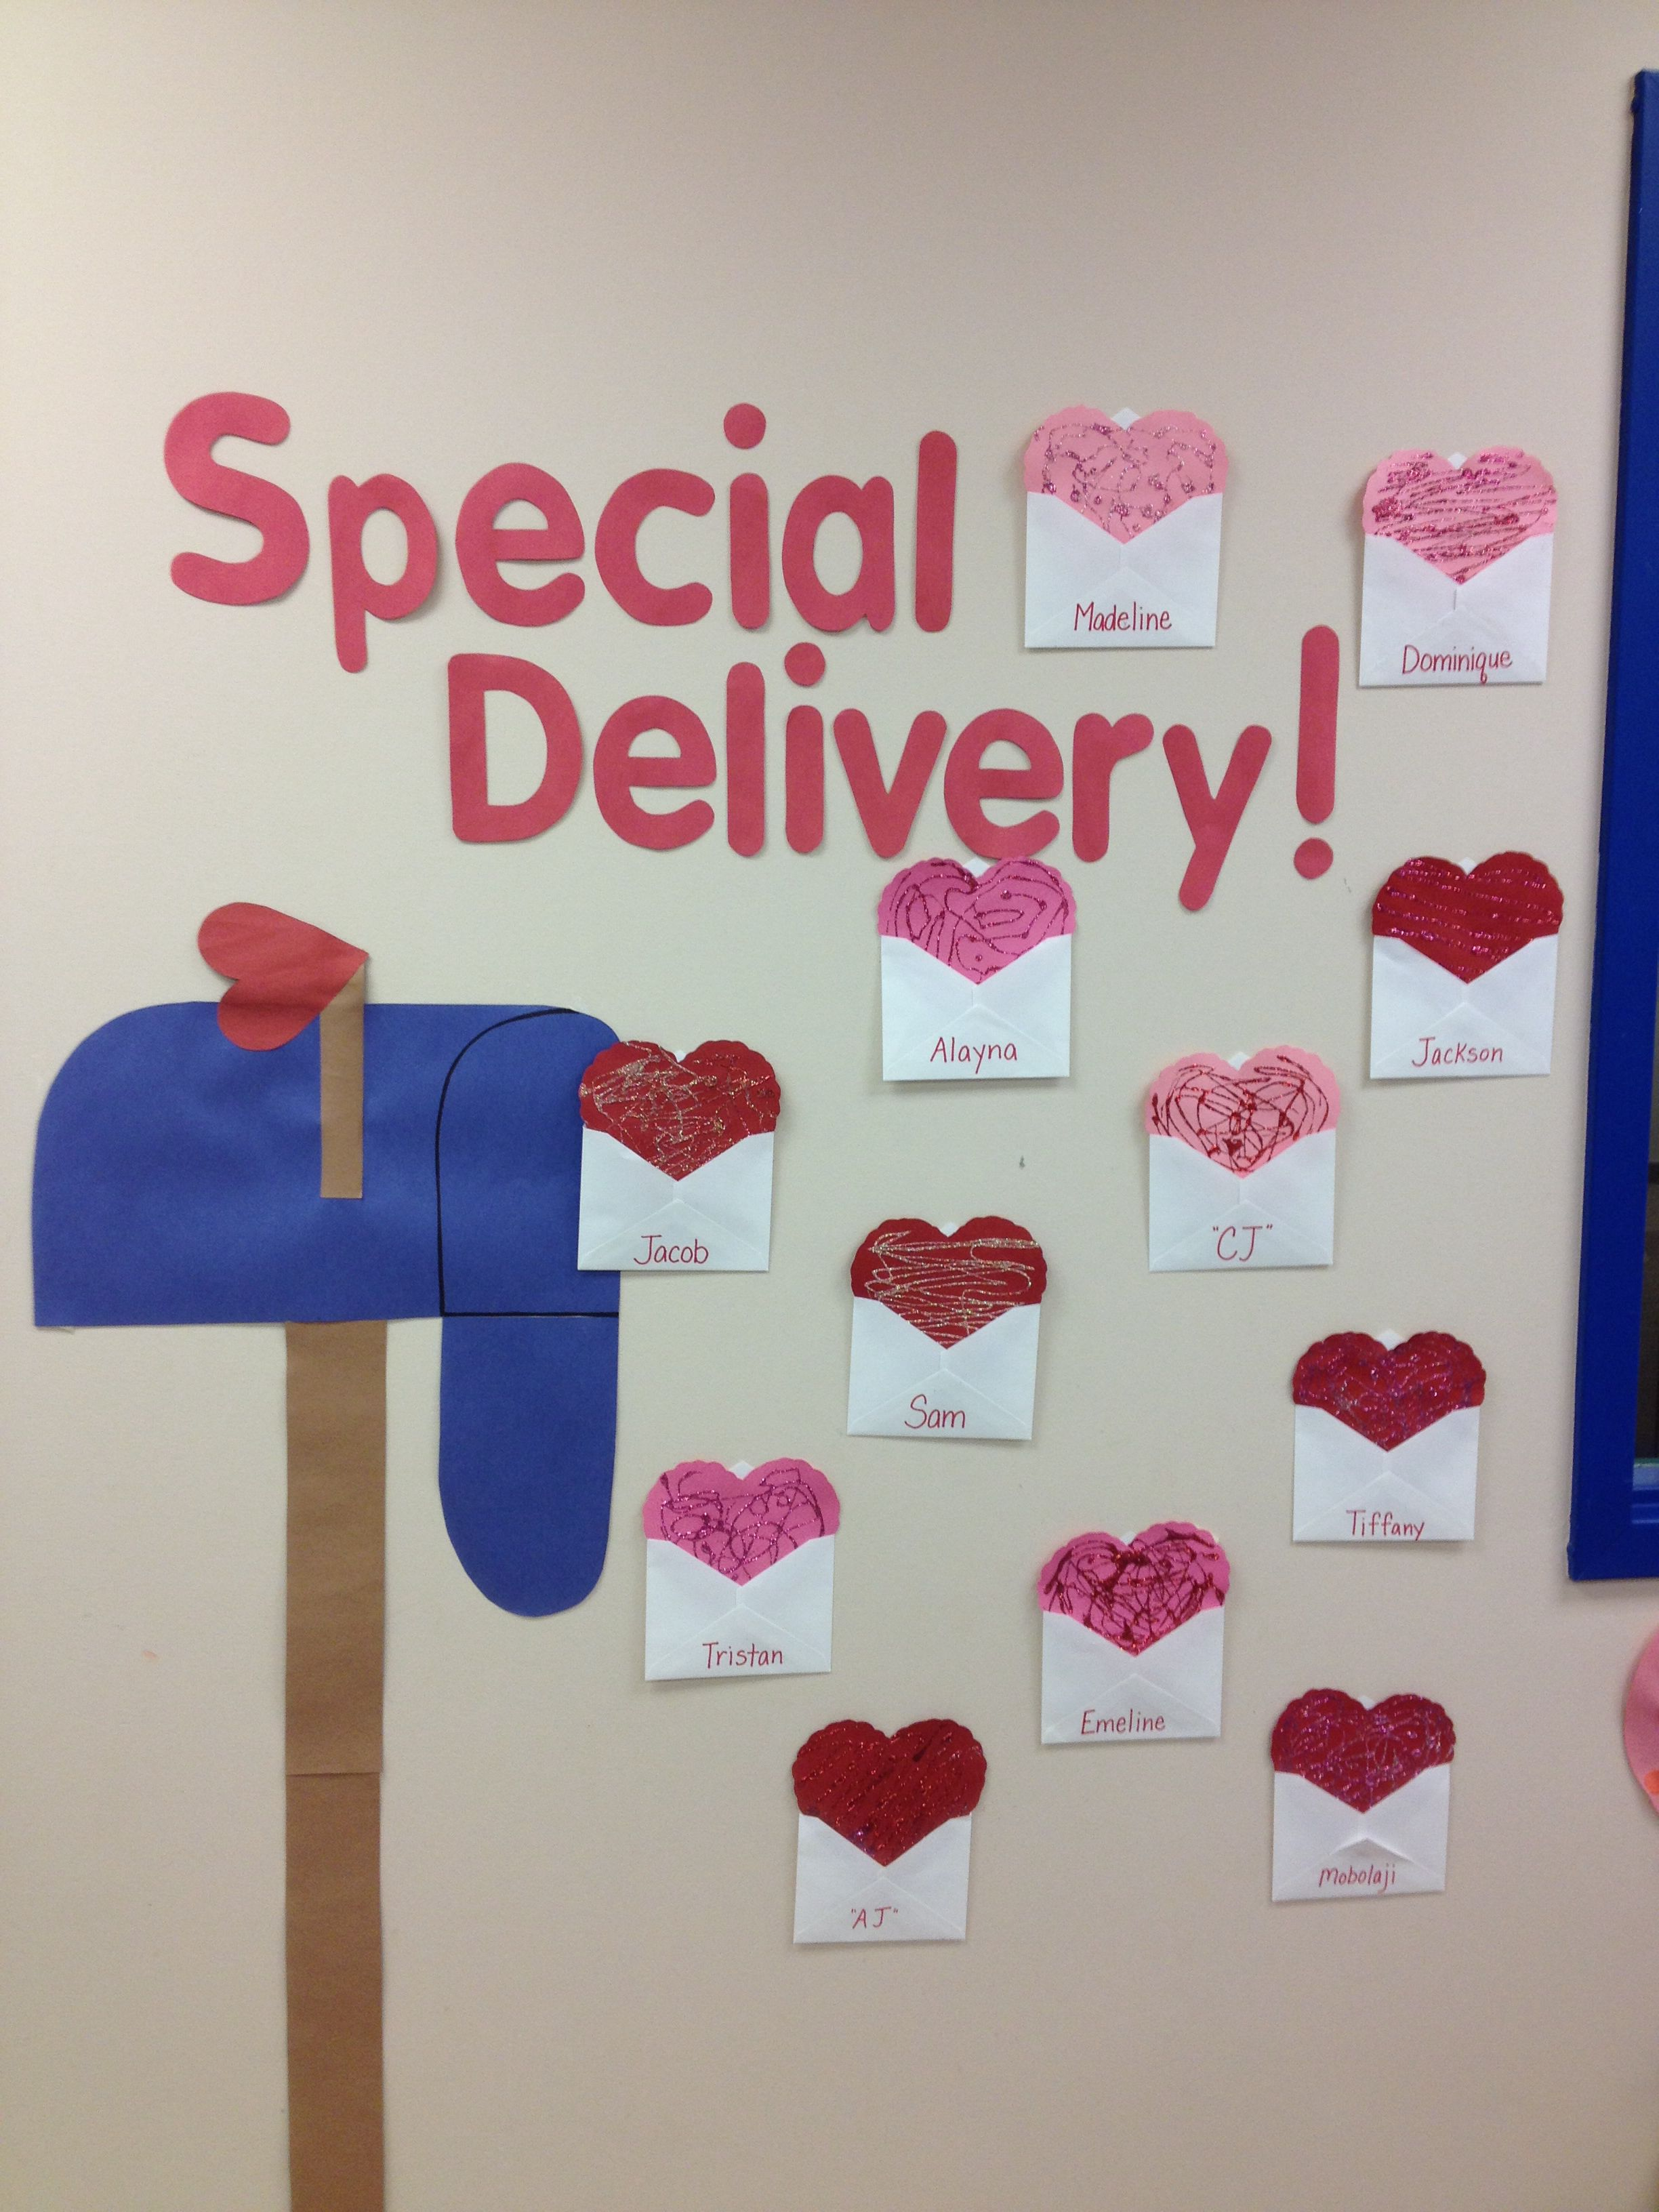 Decorating the classroom wall for Valentines | Classroom ...